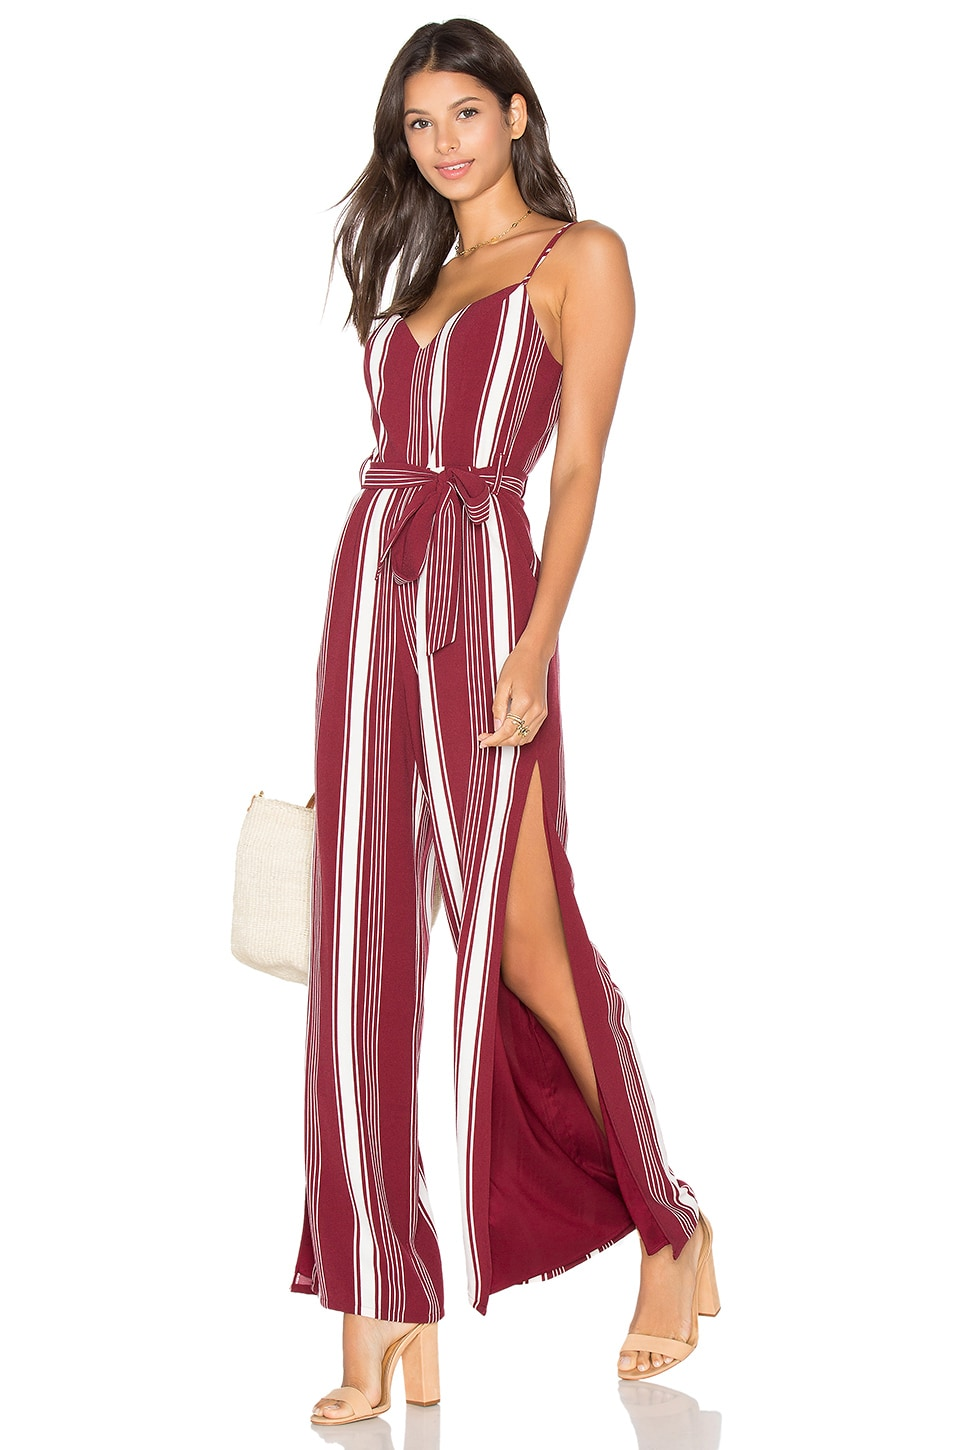 Lovers + Friends Charisma Jumpsuit in Cranberry Stripe